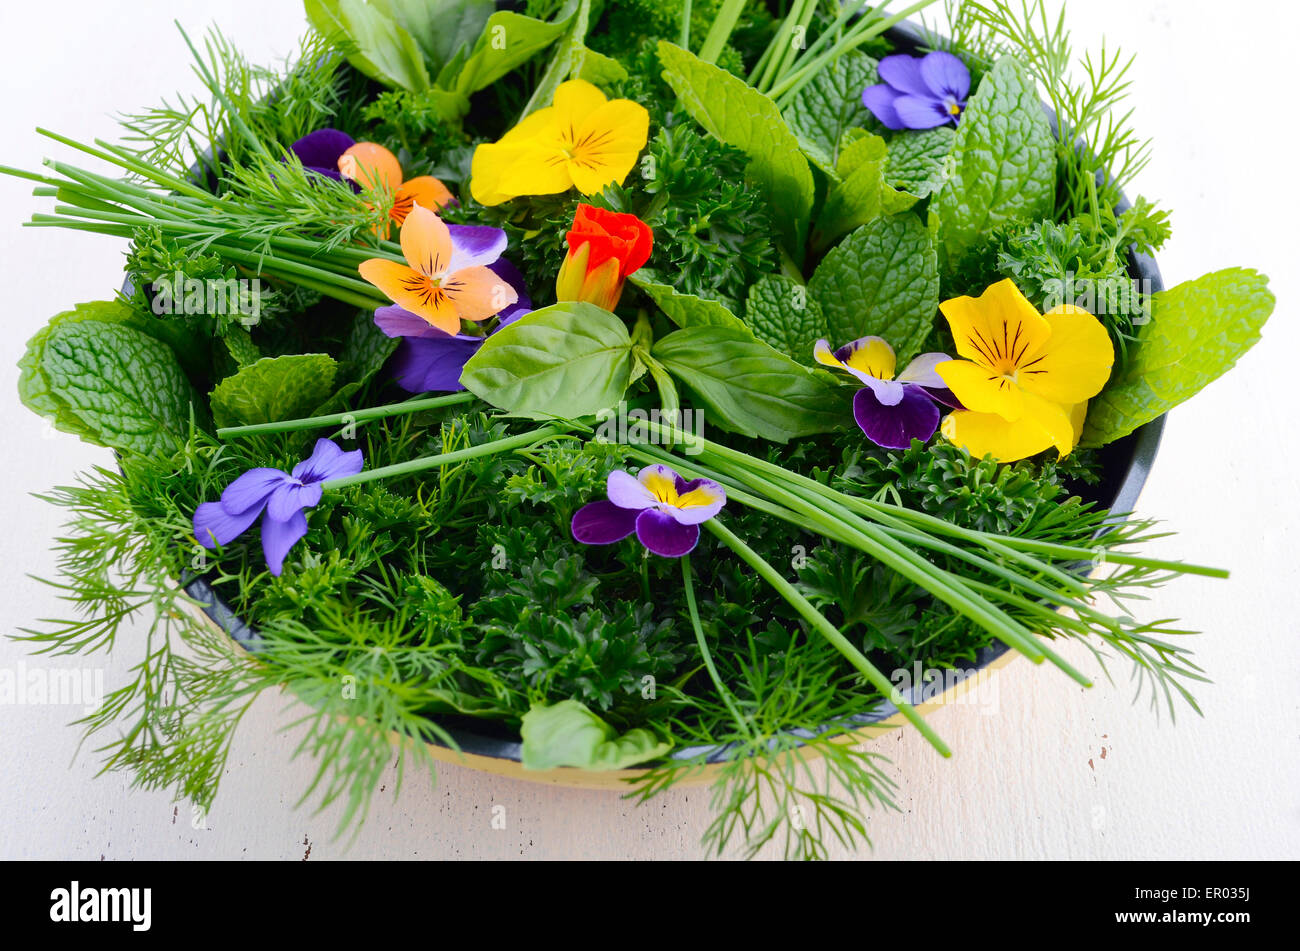 Cooking with herbs concept with fresh herbs and edible flowers in modern yellow fry pan skillet on white wood table. - Stock Image